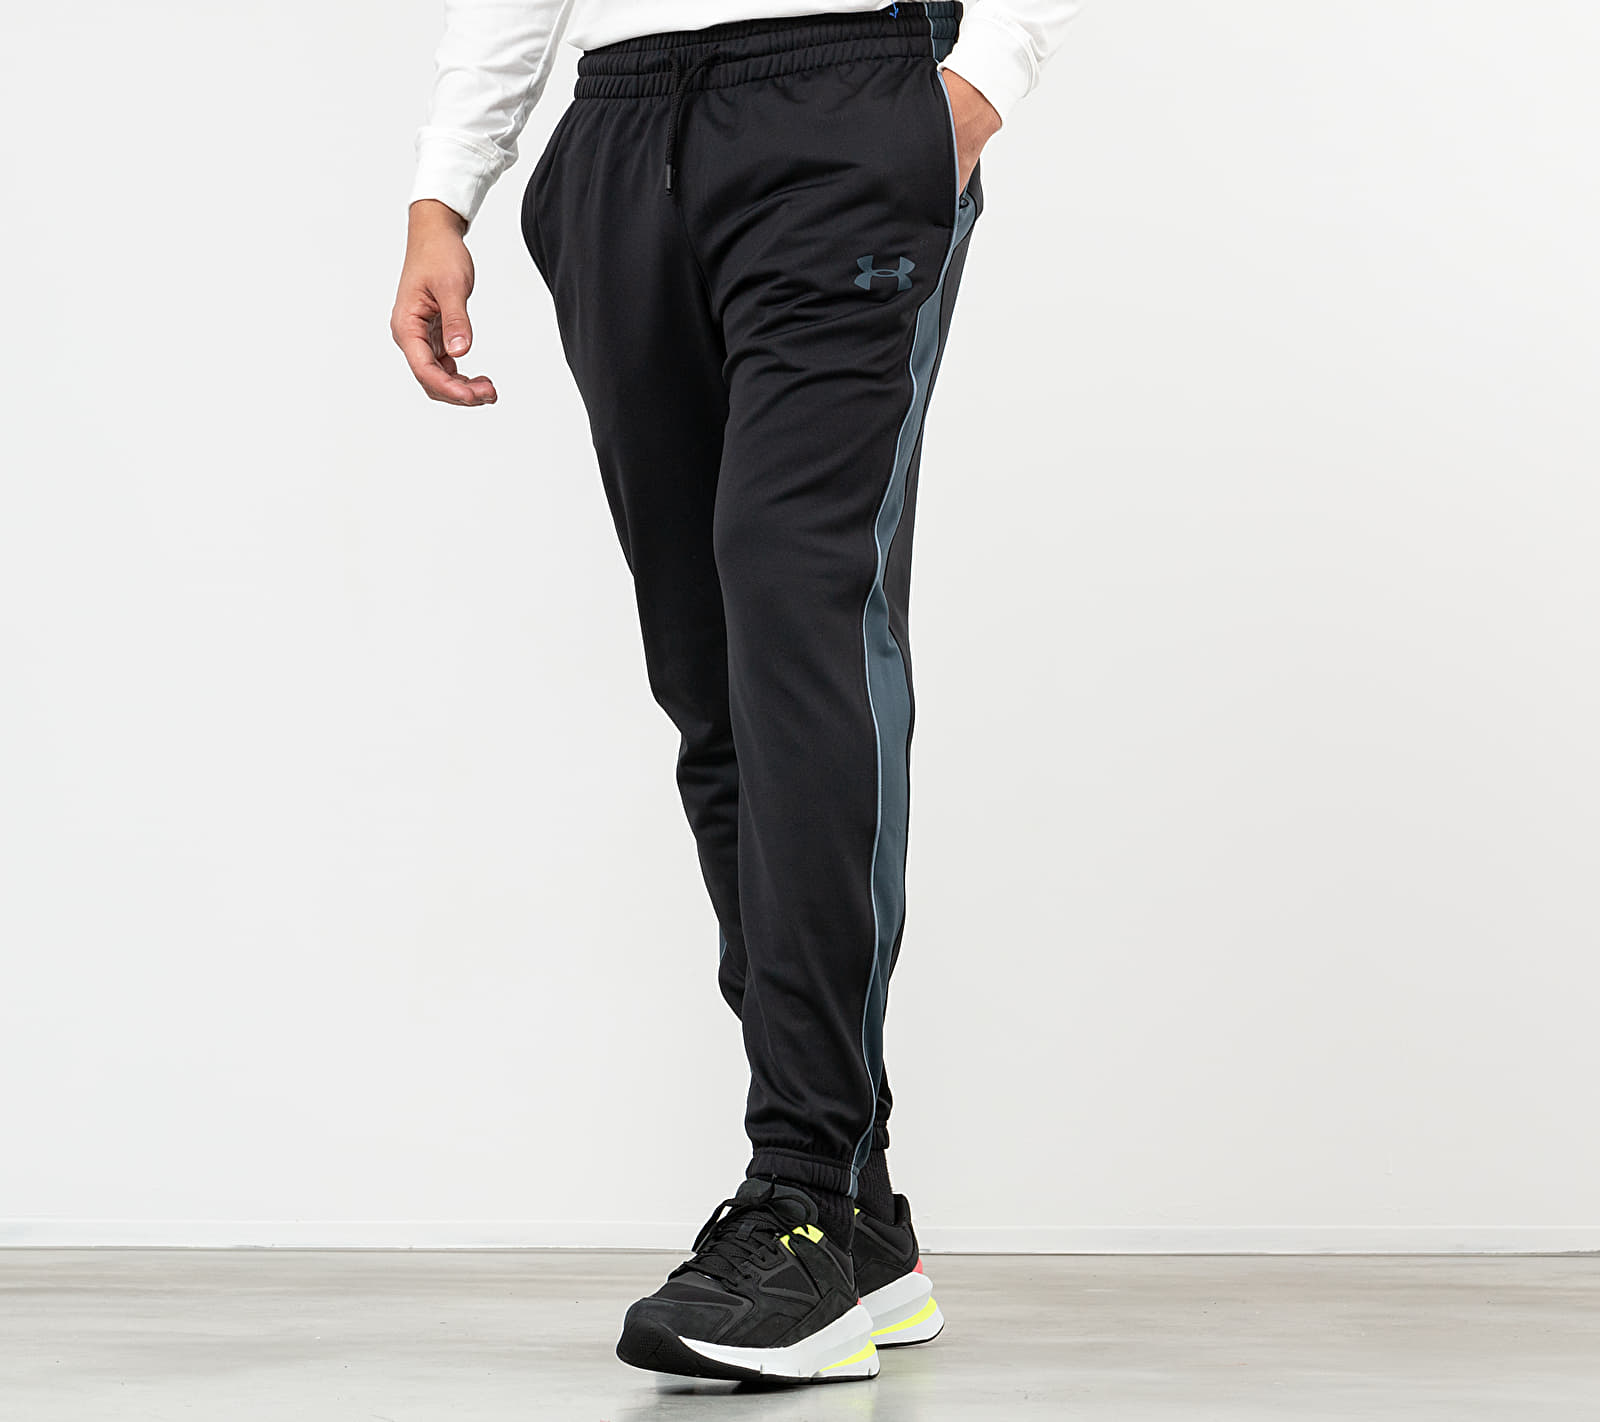 Under Armour Unstoppable Essential Track Pants Black